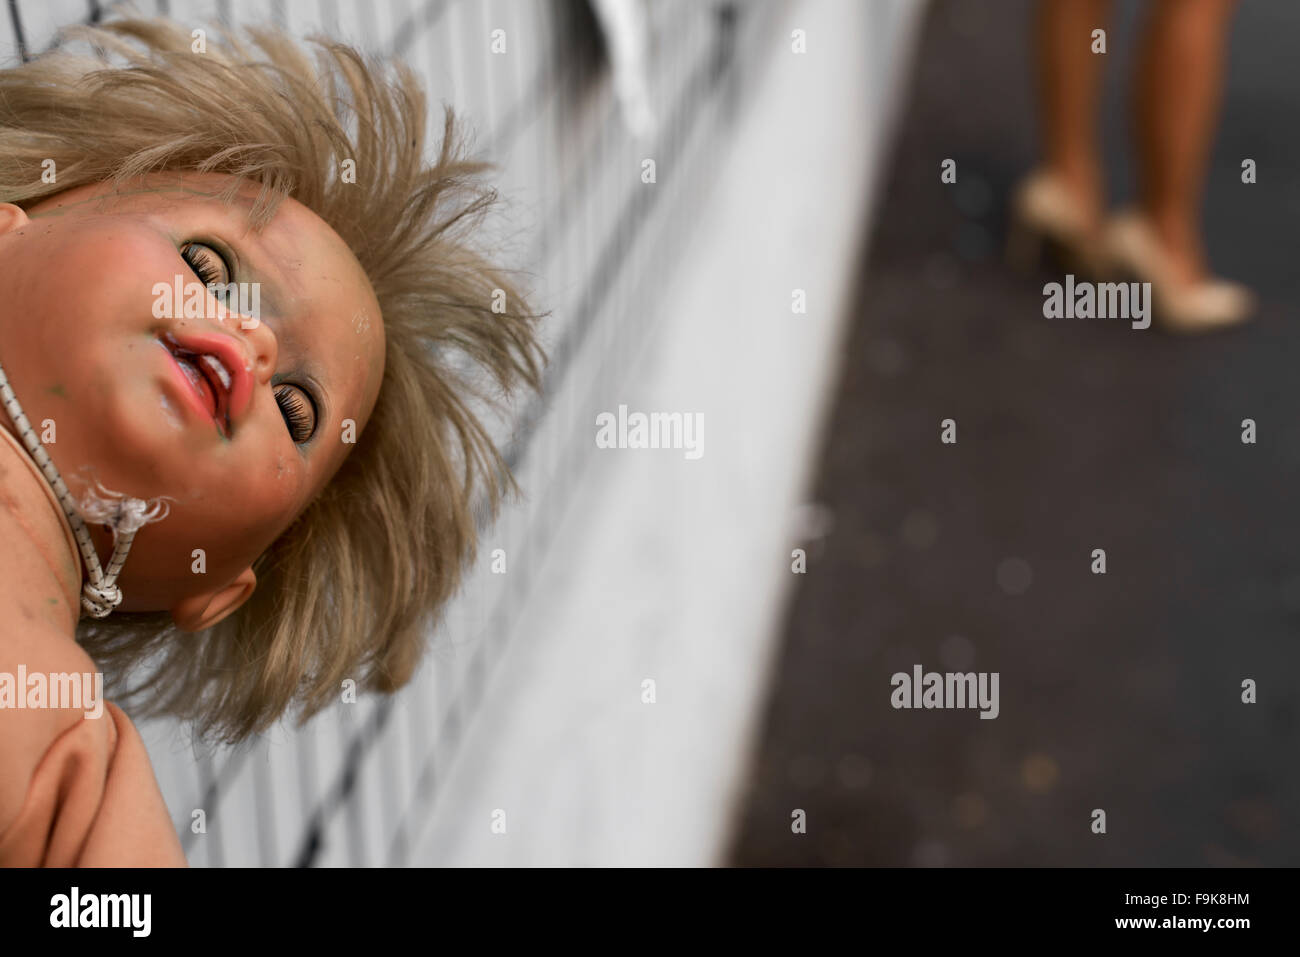 Milan, Italy. The Wall Of Dolls Installation Stock Photo